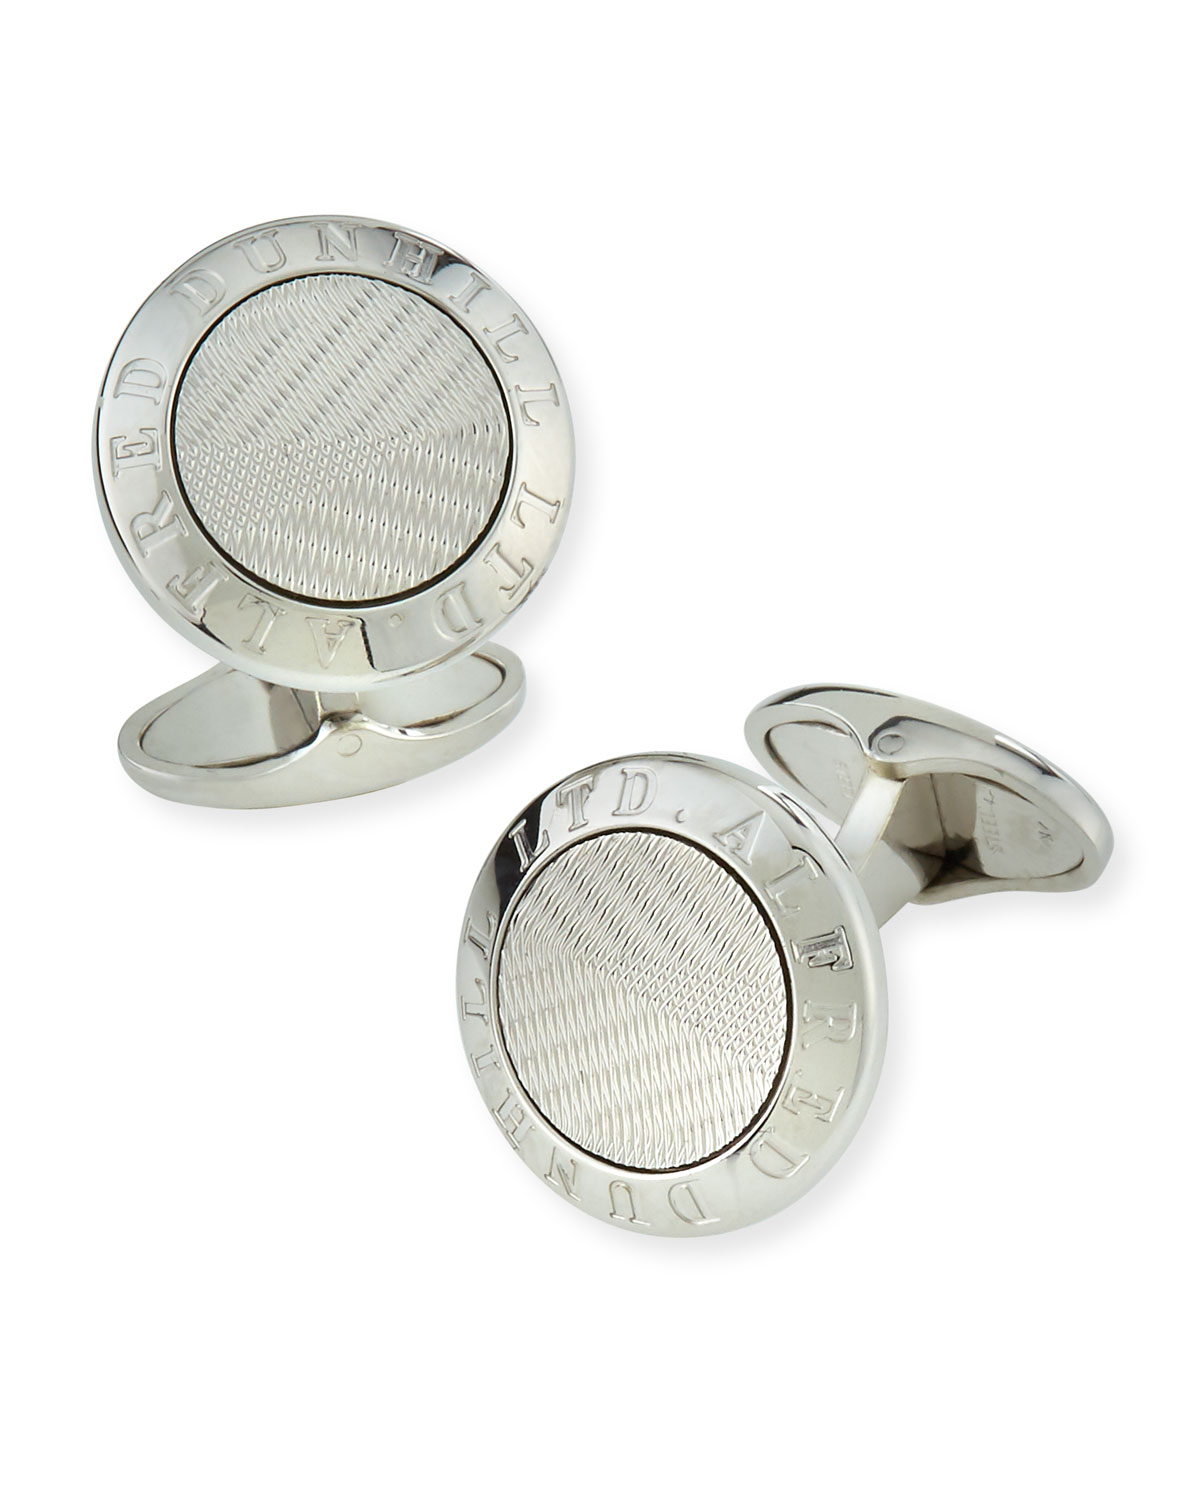 Dunhill Accessories MEN'S AD COIN SILVER CUFFLINKS